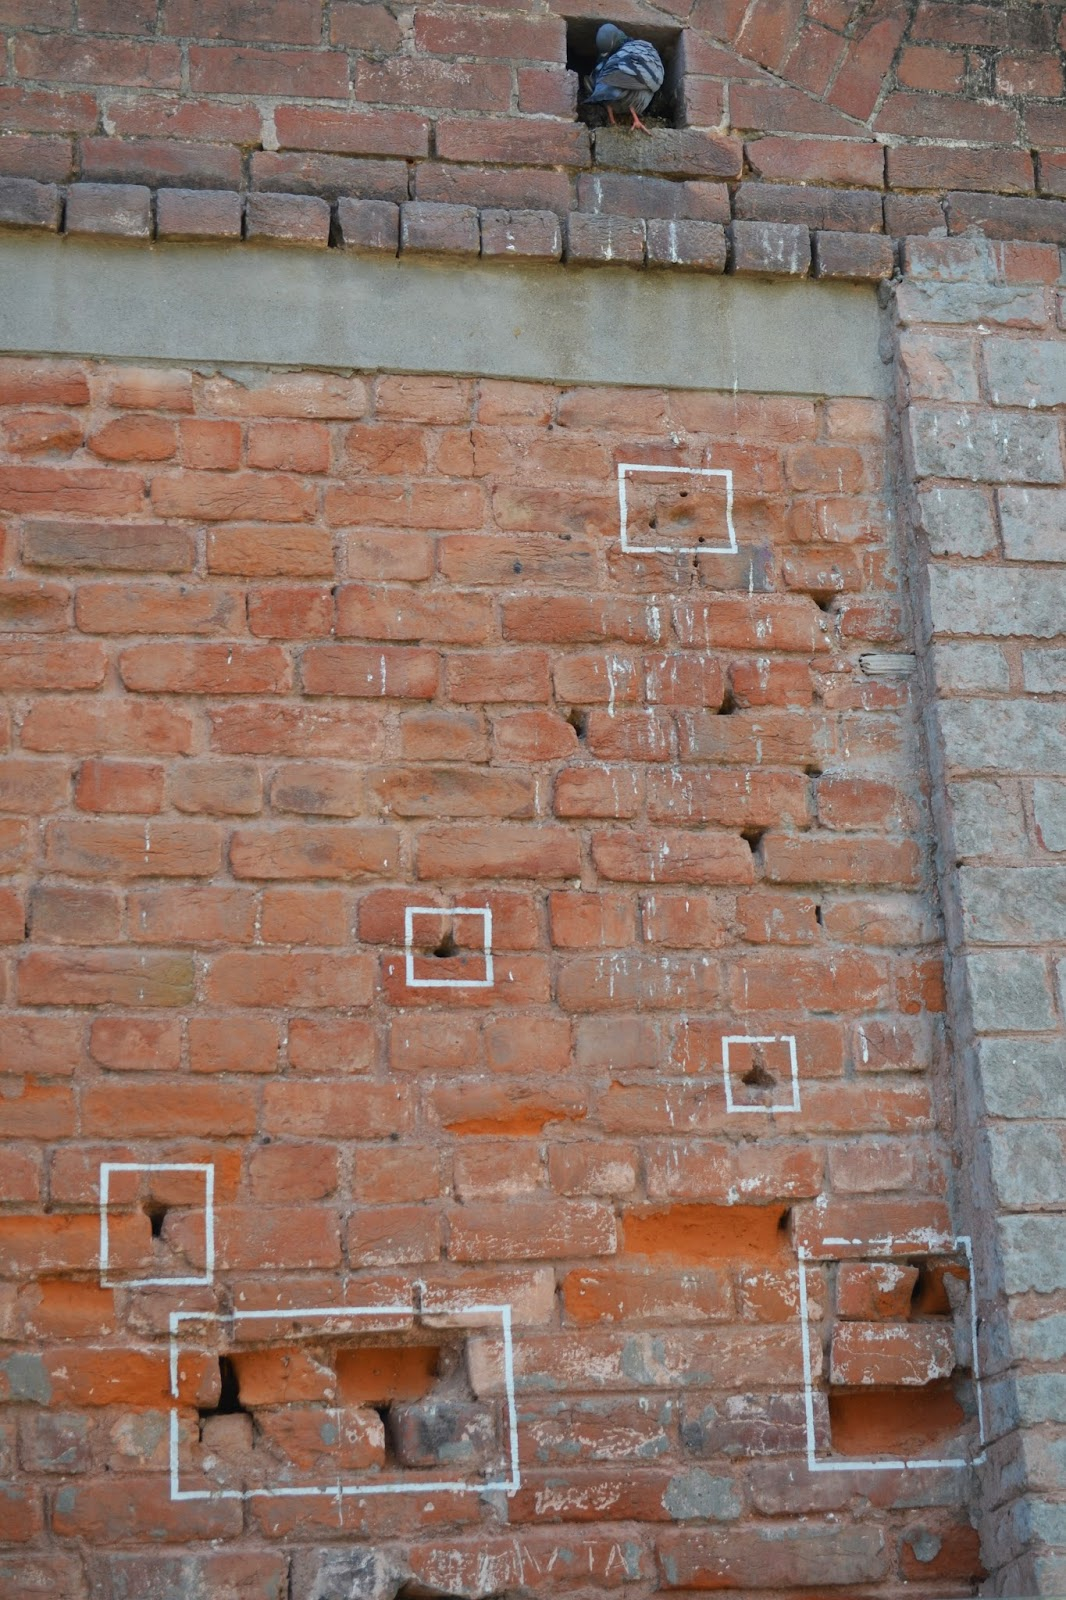 bullet marks on the wall of Jallianwala Bagh